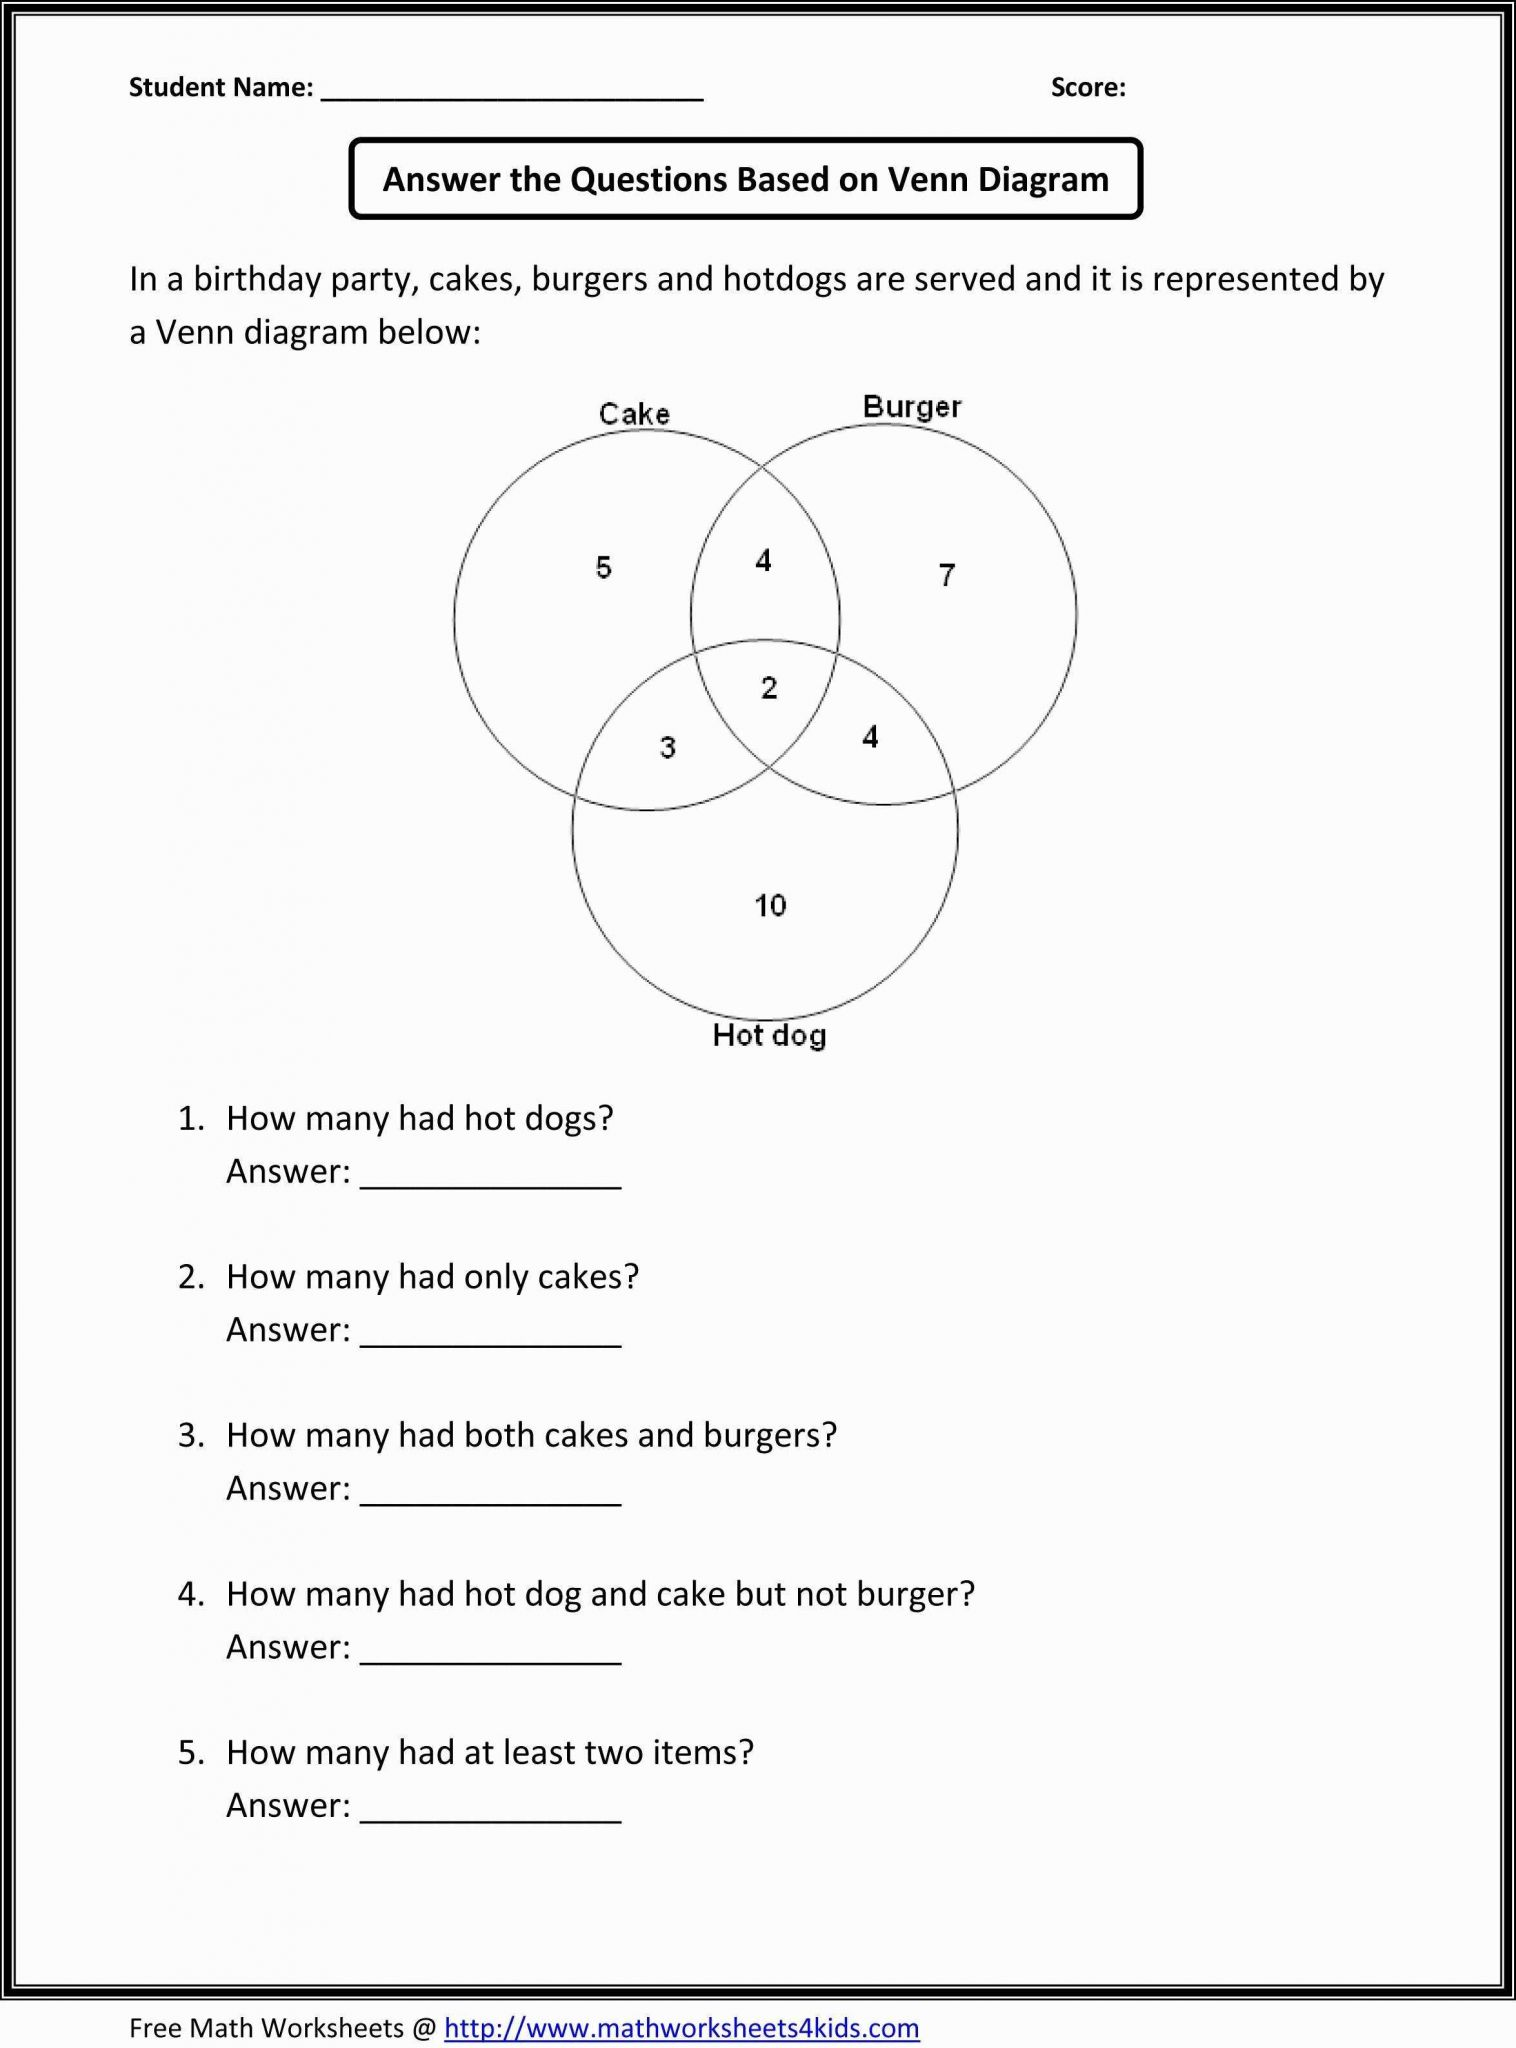 7th Grade Math Word Problems Worksheets or Printable Math Worksheets Foil Method Refrence 1st Grade Math Word